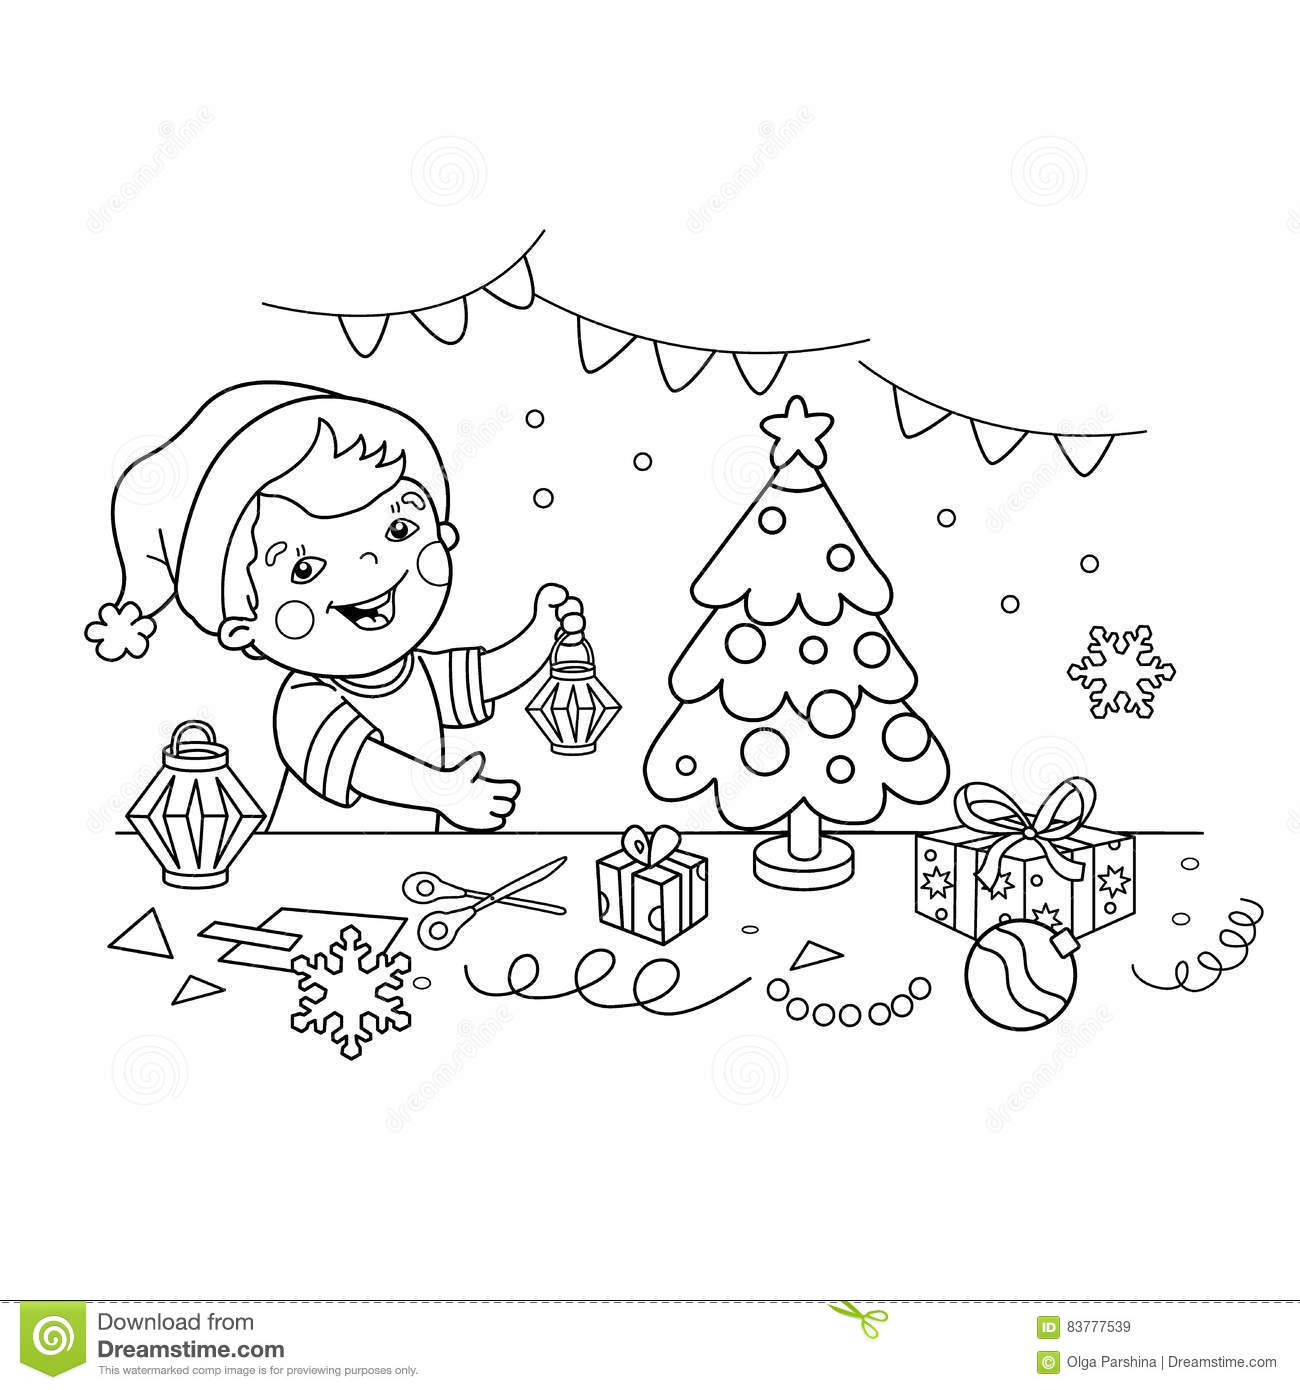 Coloring Page Outline Of Cartoon Boy Making Christmas